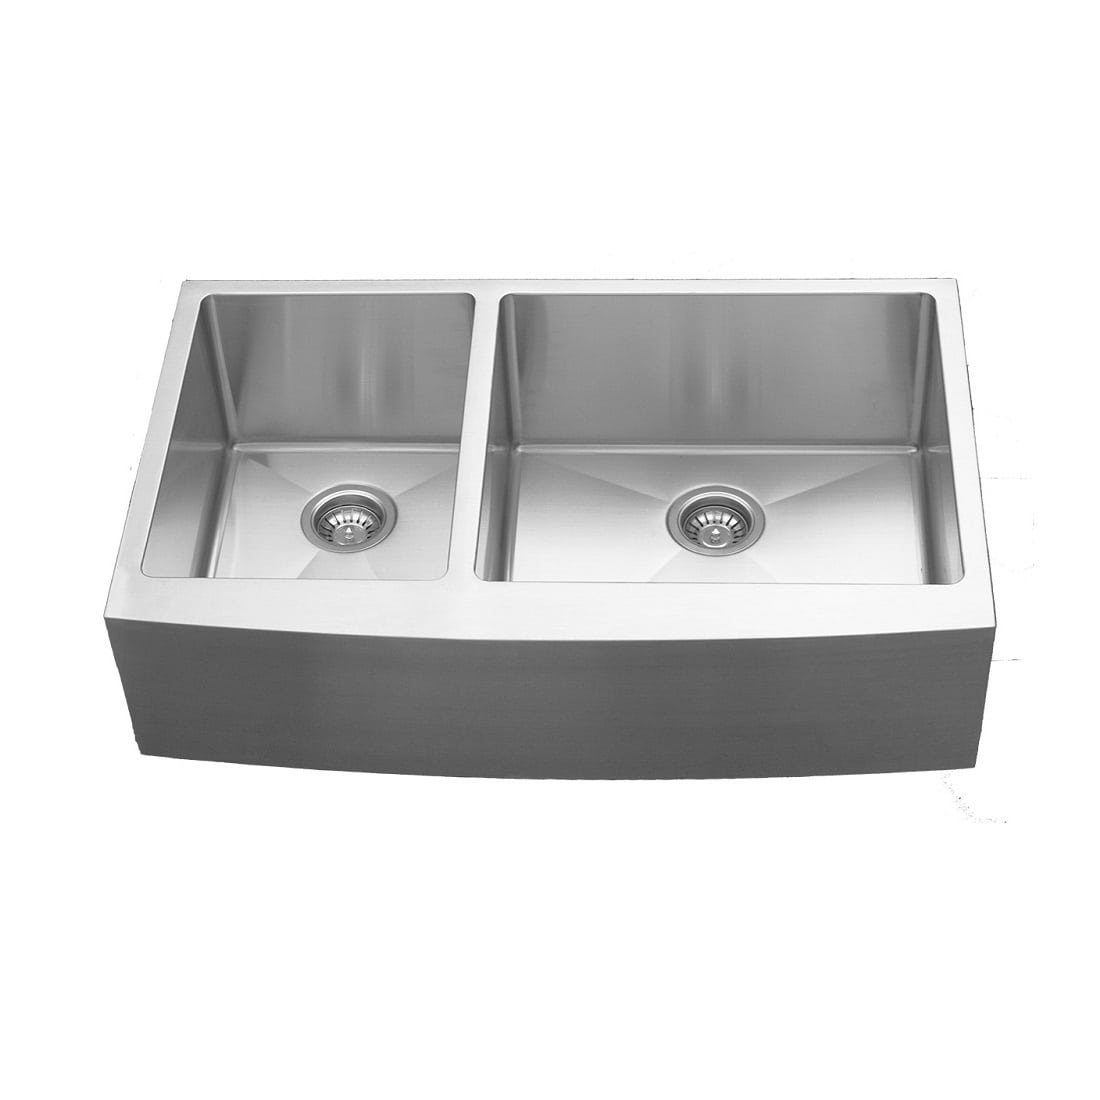 Elite EL 86 Double Undermount Bowl With Apron Sink